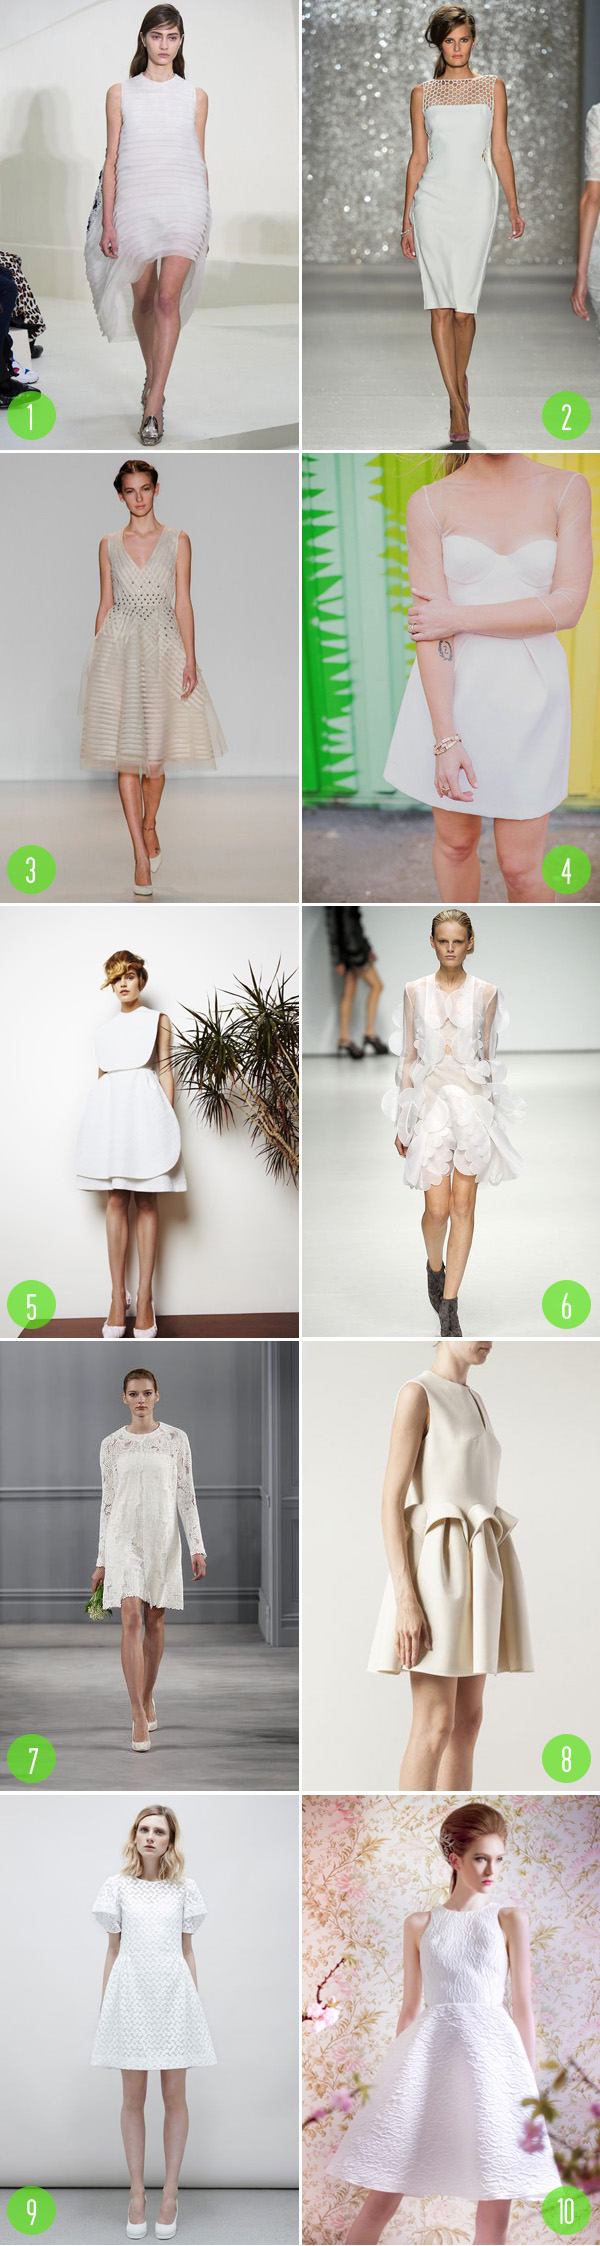 top 10: short wedding dress